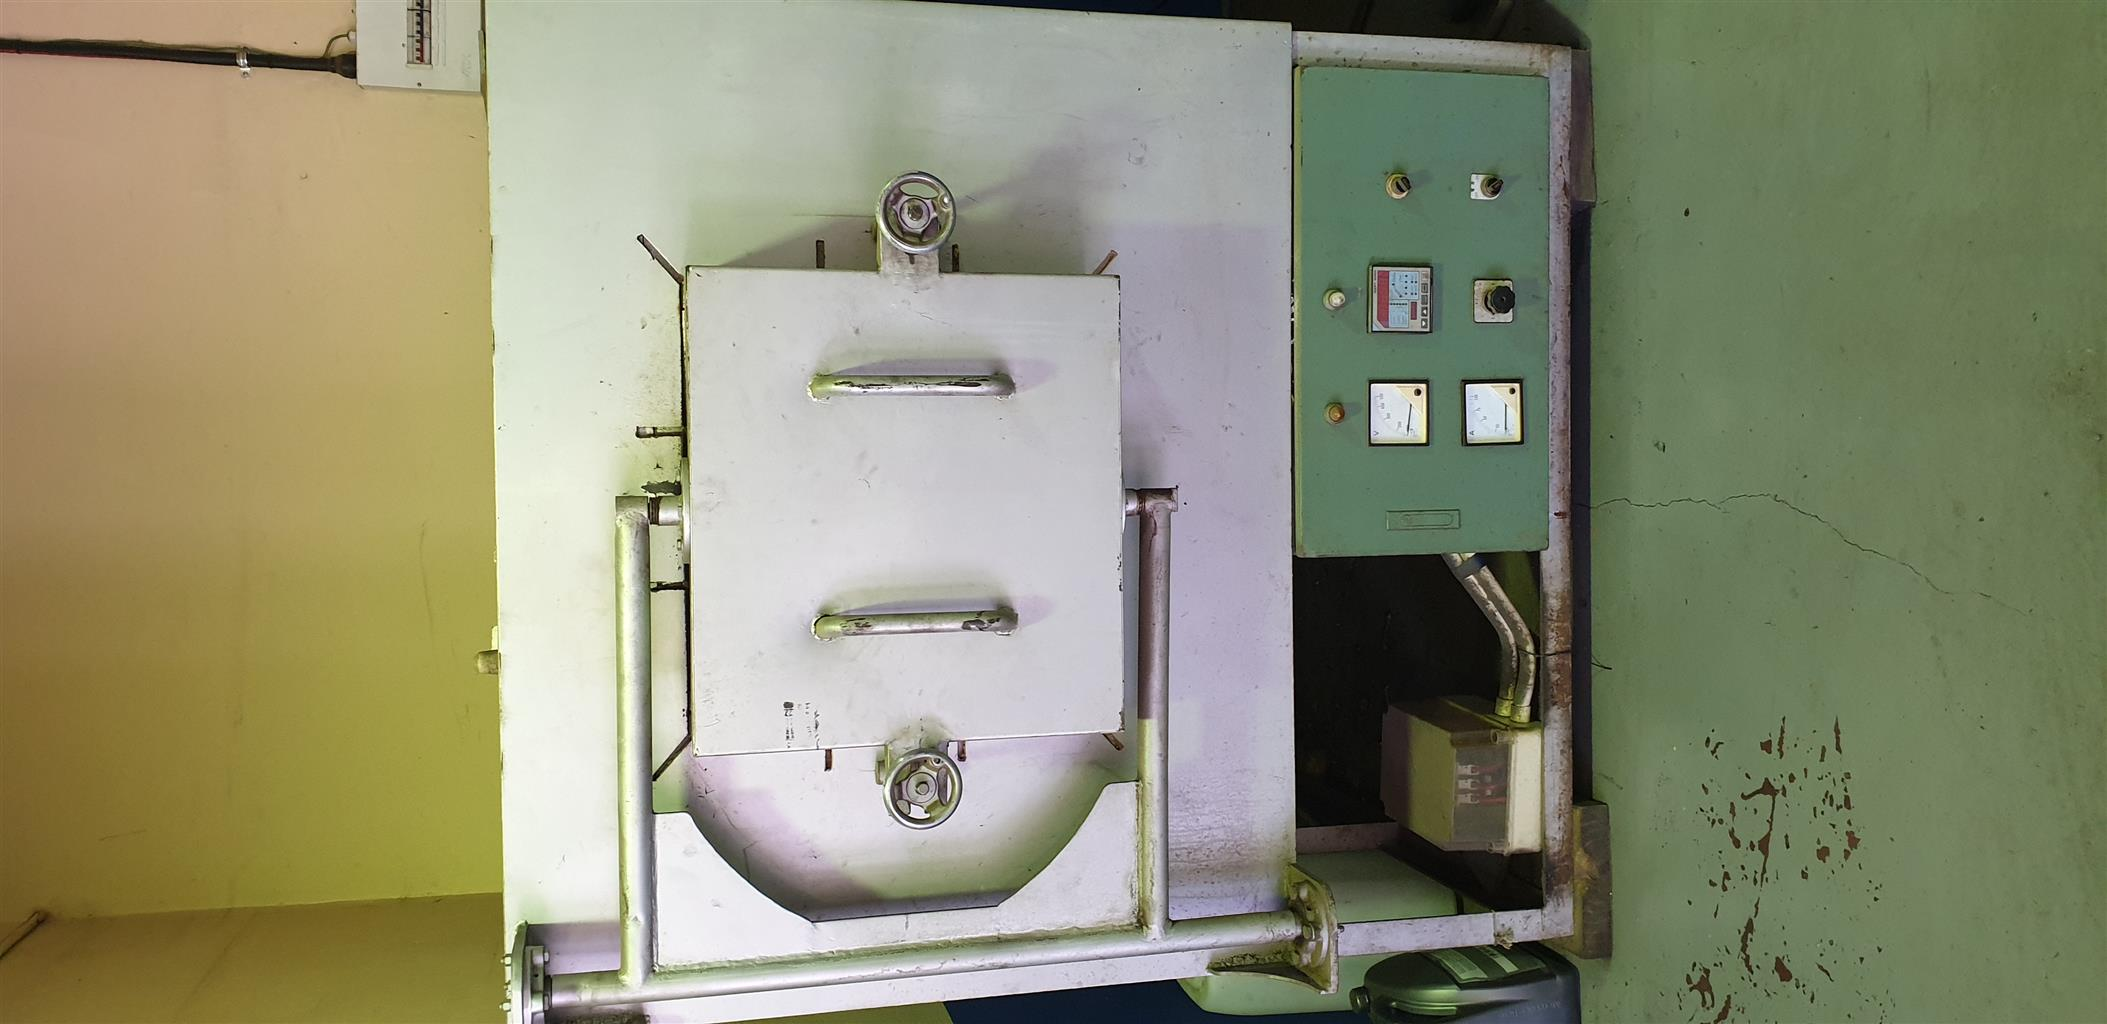 clay or magnets firing oven